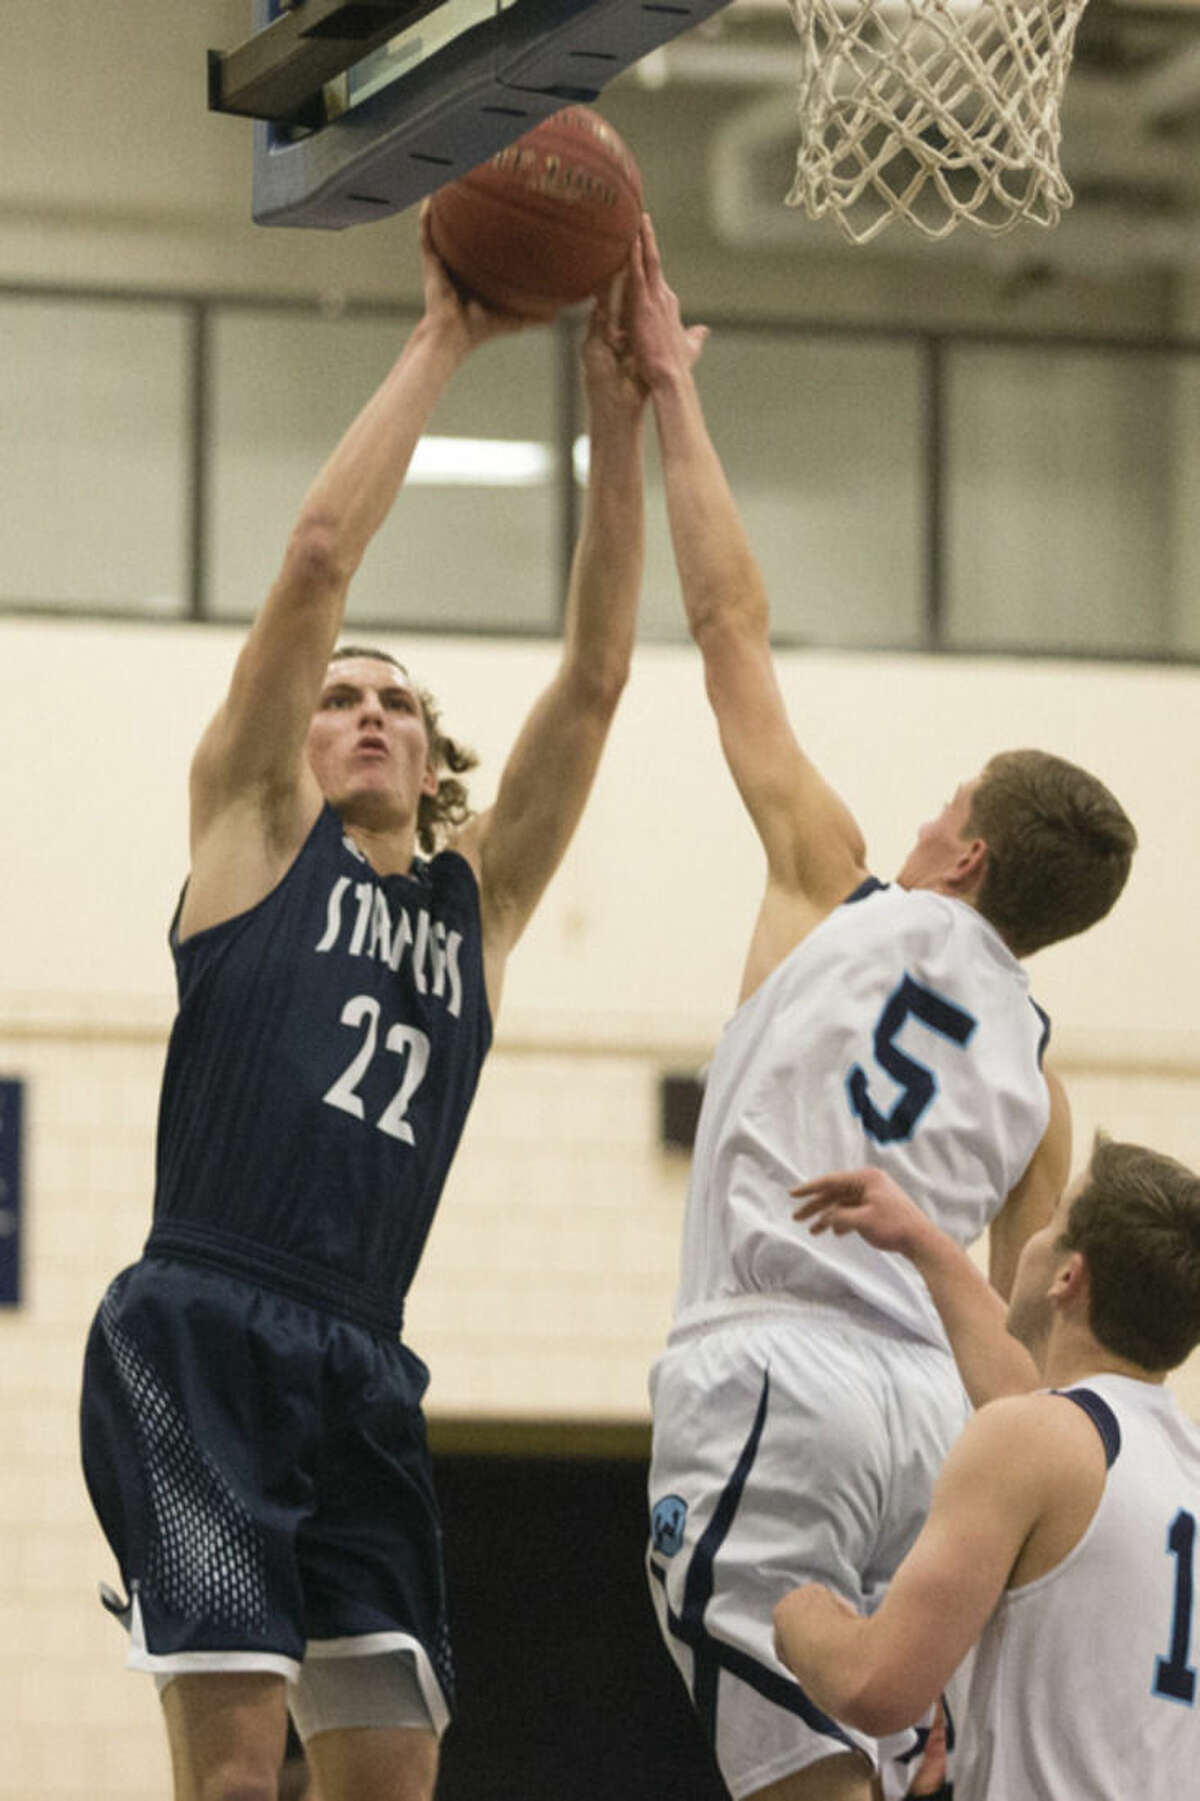 Hour photo/Chris Palermo Staples' Nic Esposito puts up a shot during Monday night's game against Wilton, as the Warriors' Miles Elmasry contests.